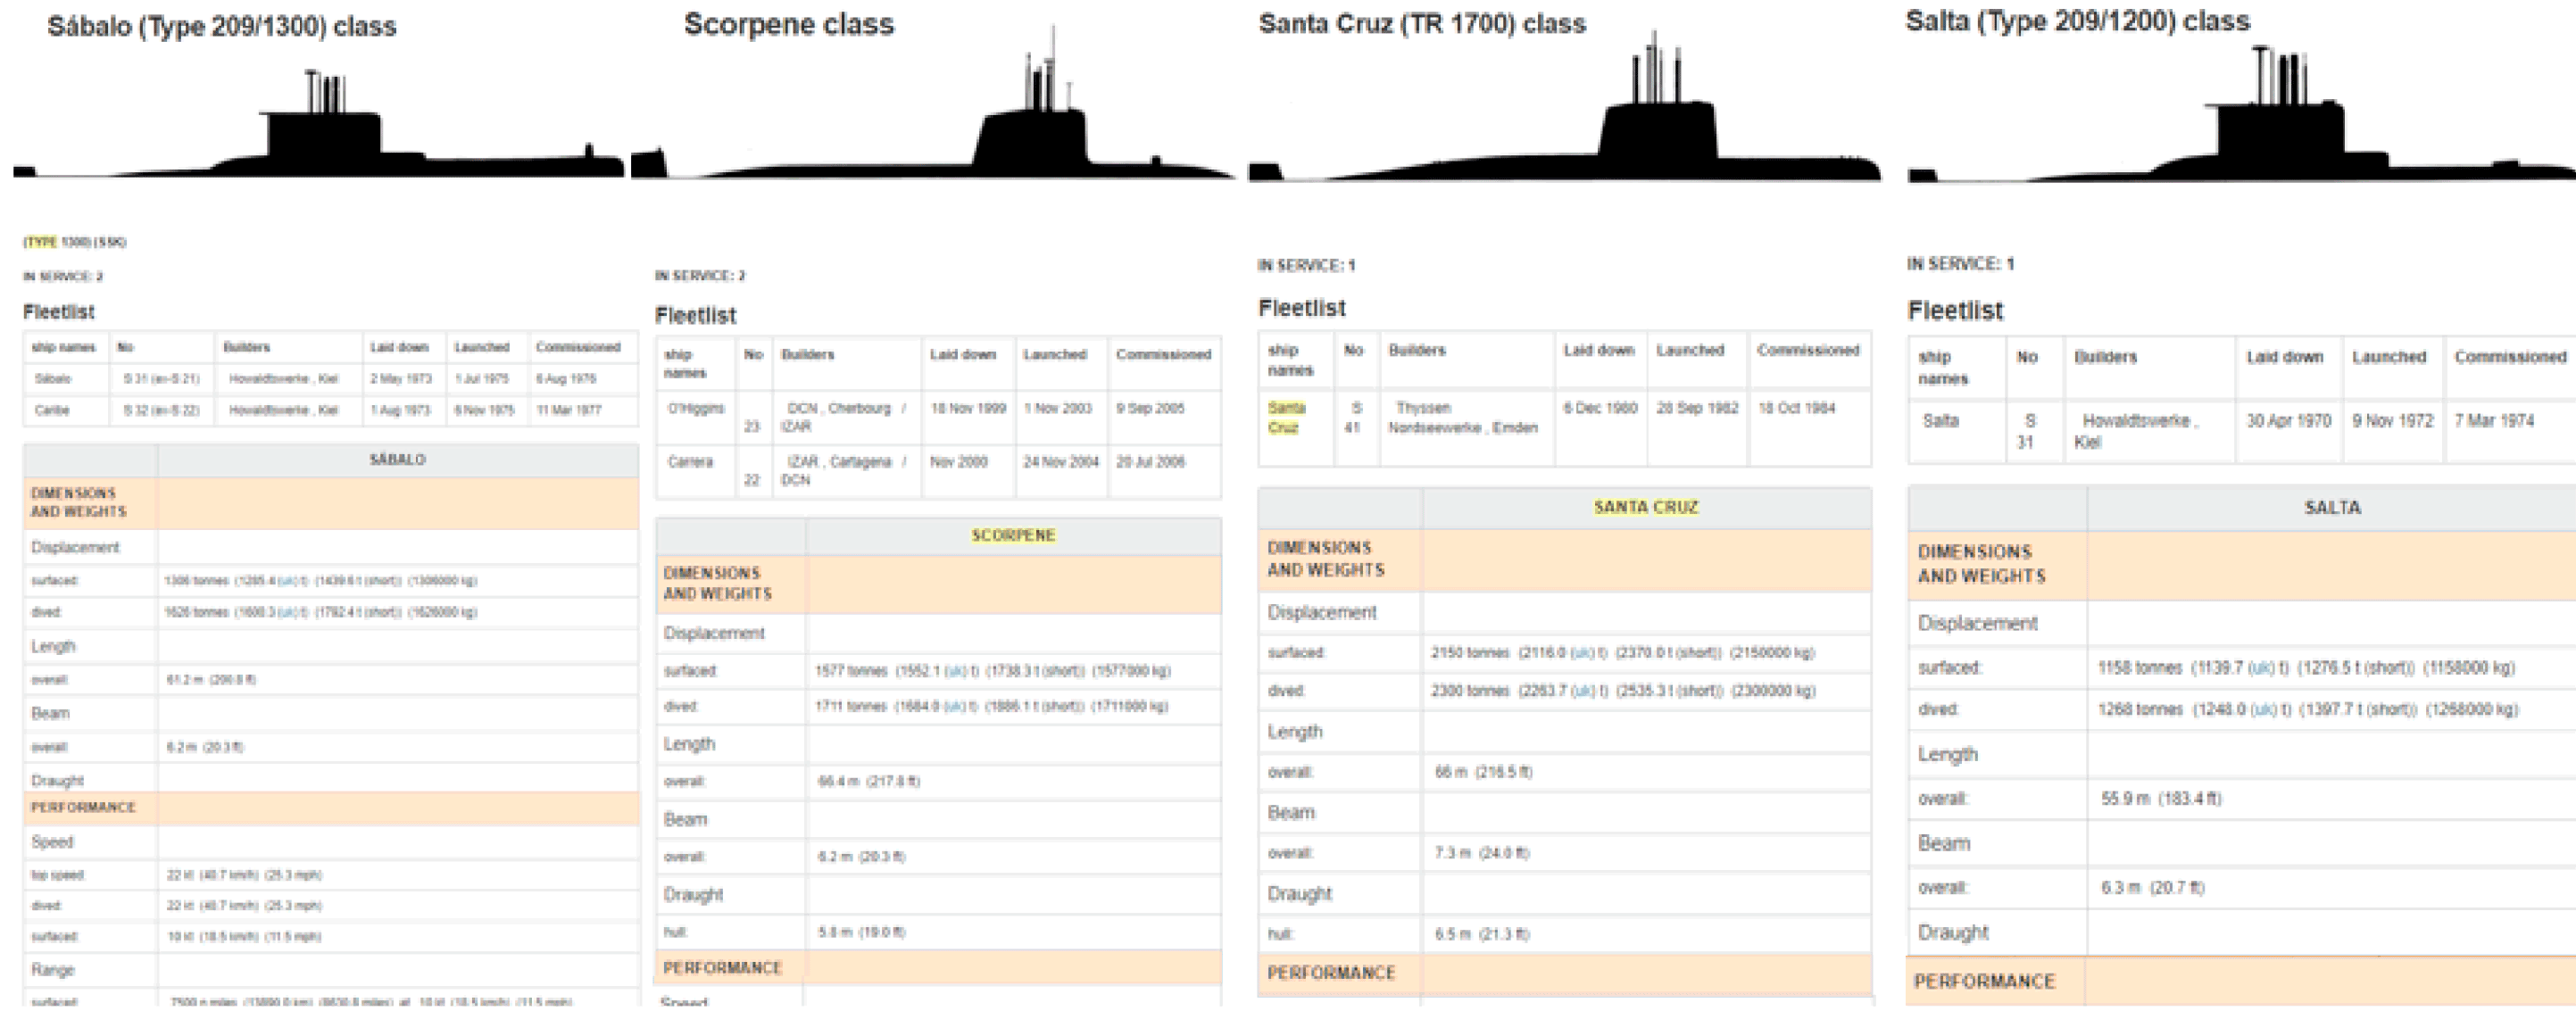 Image of military ship platform comparison